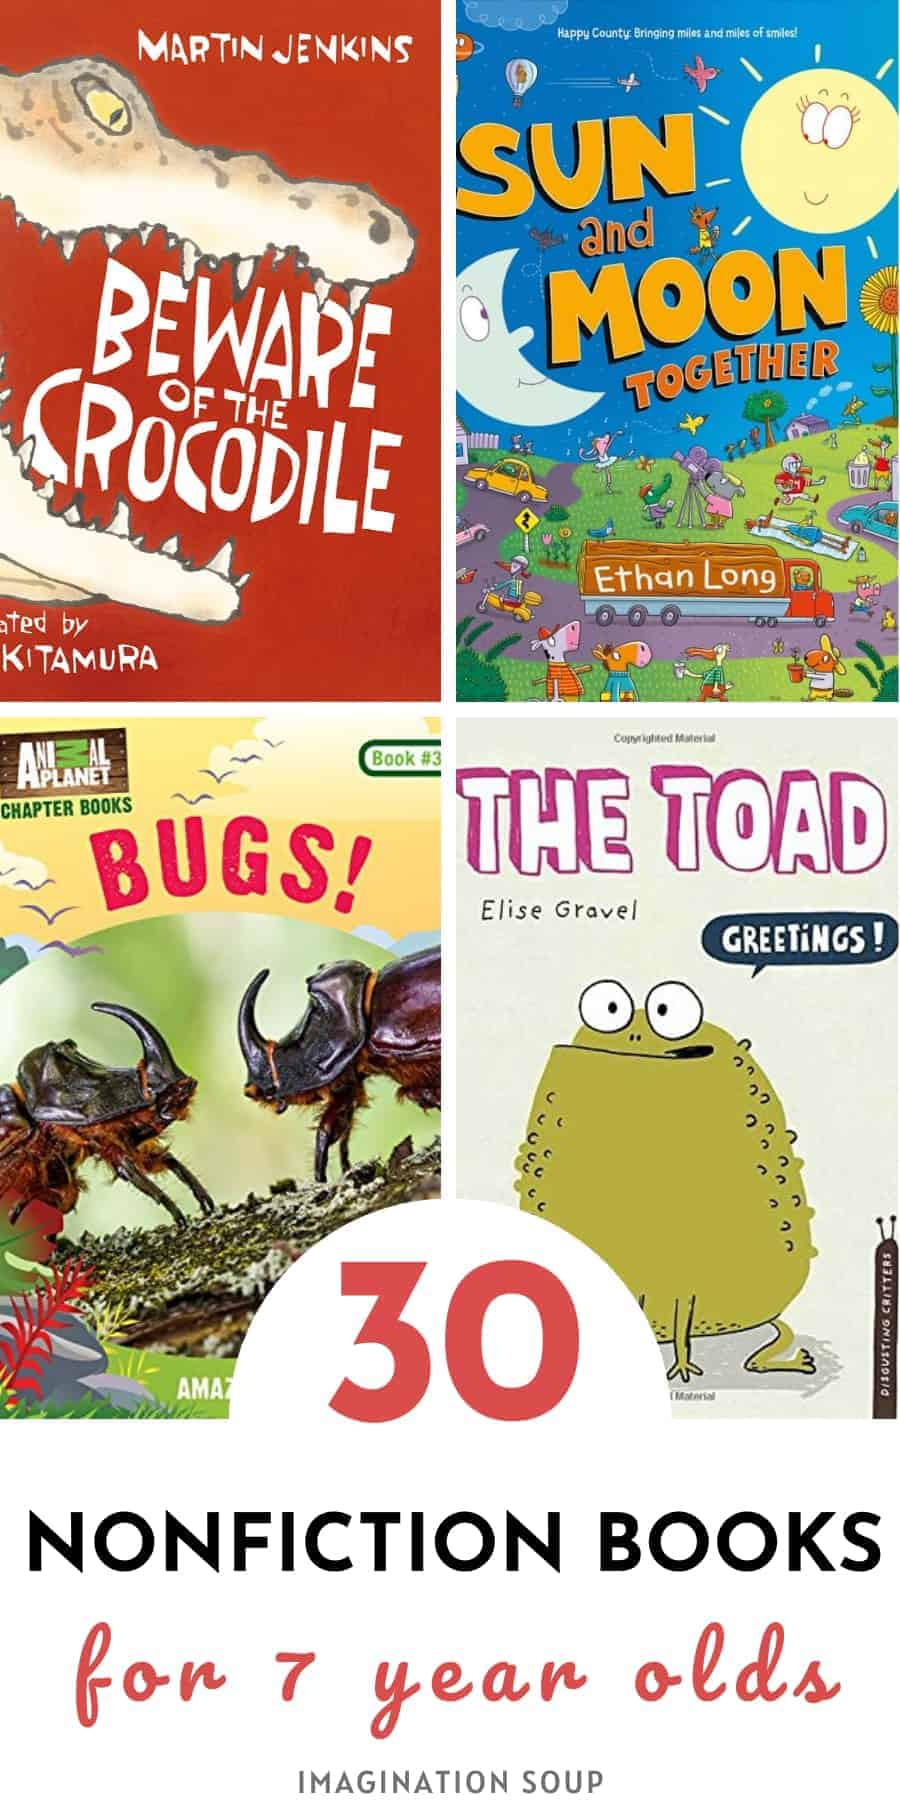 best nonfiction books for 7 year olds in 2nd grade